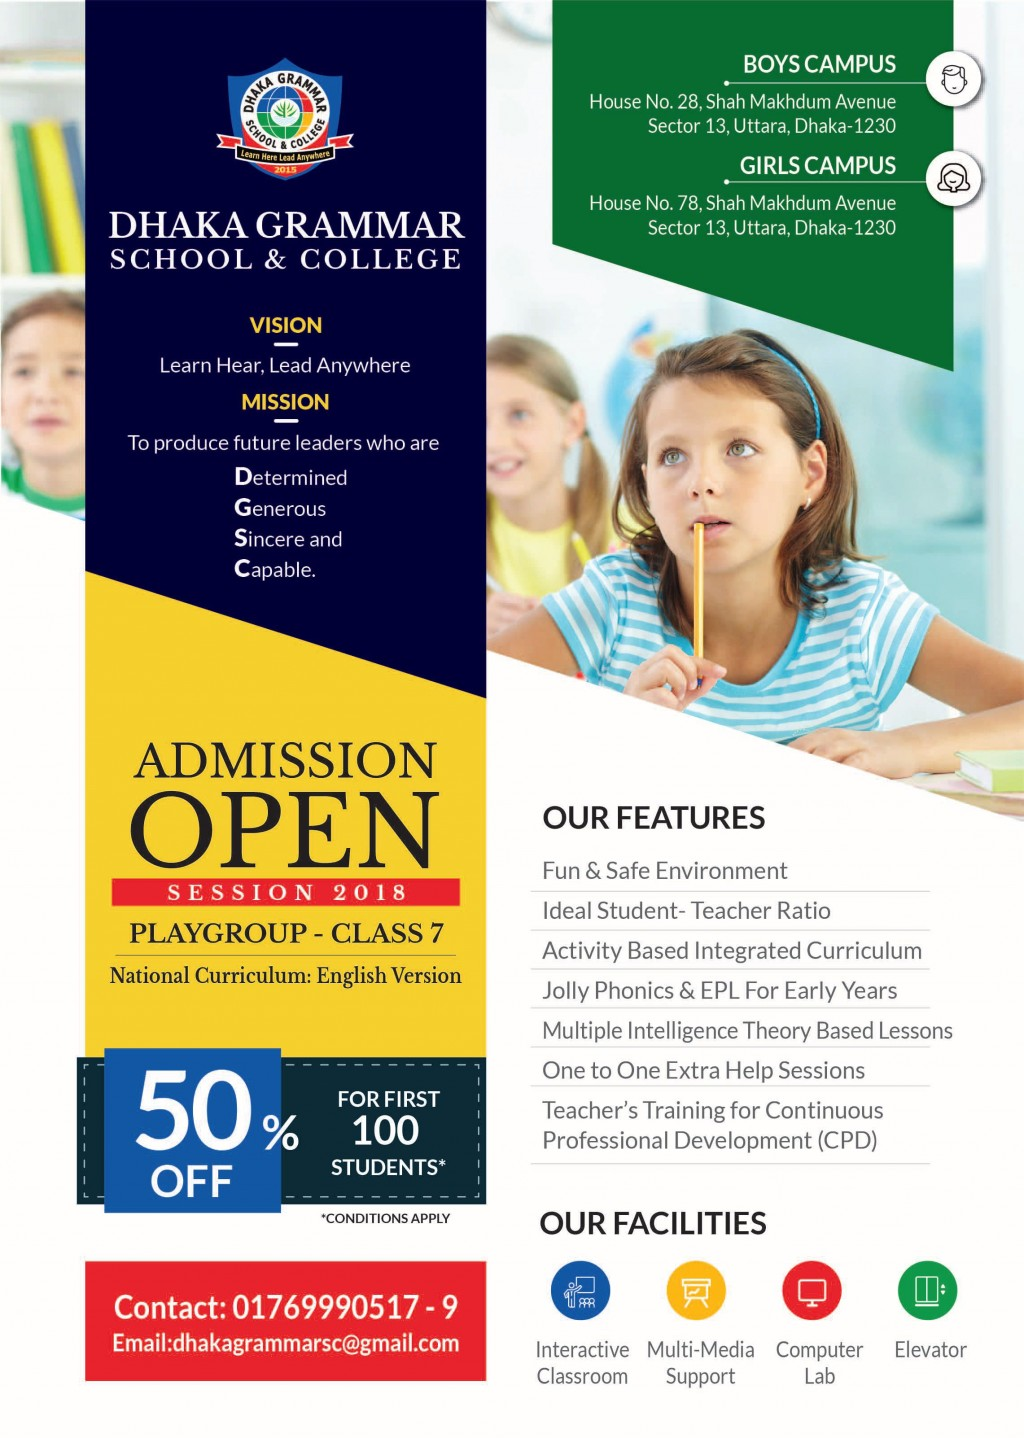 001 Outstanding School Open House Flyer Template Highest Clarity  Free MicrosoftLarge